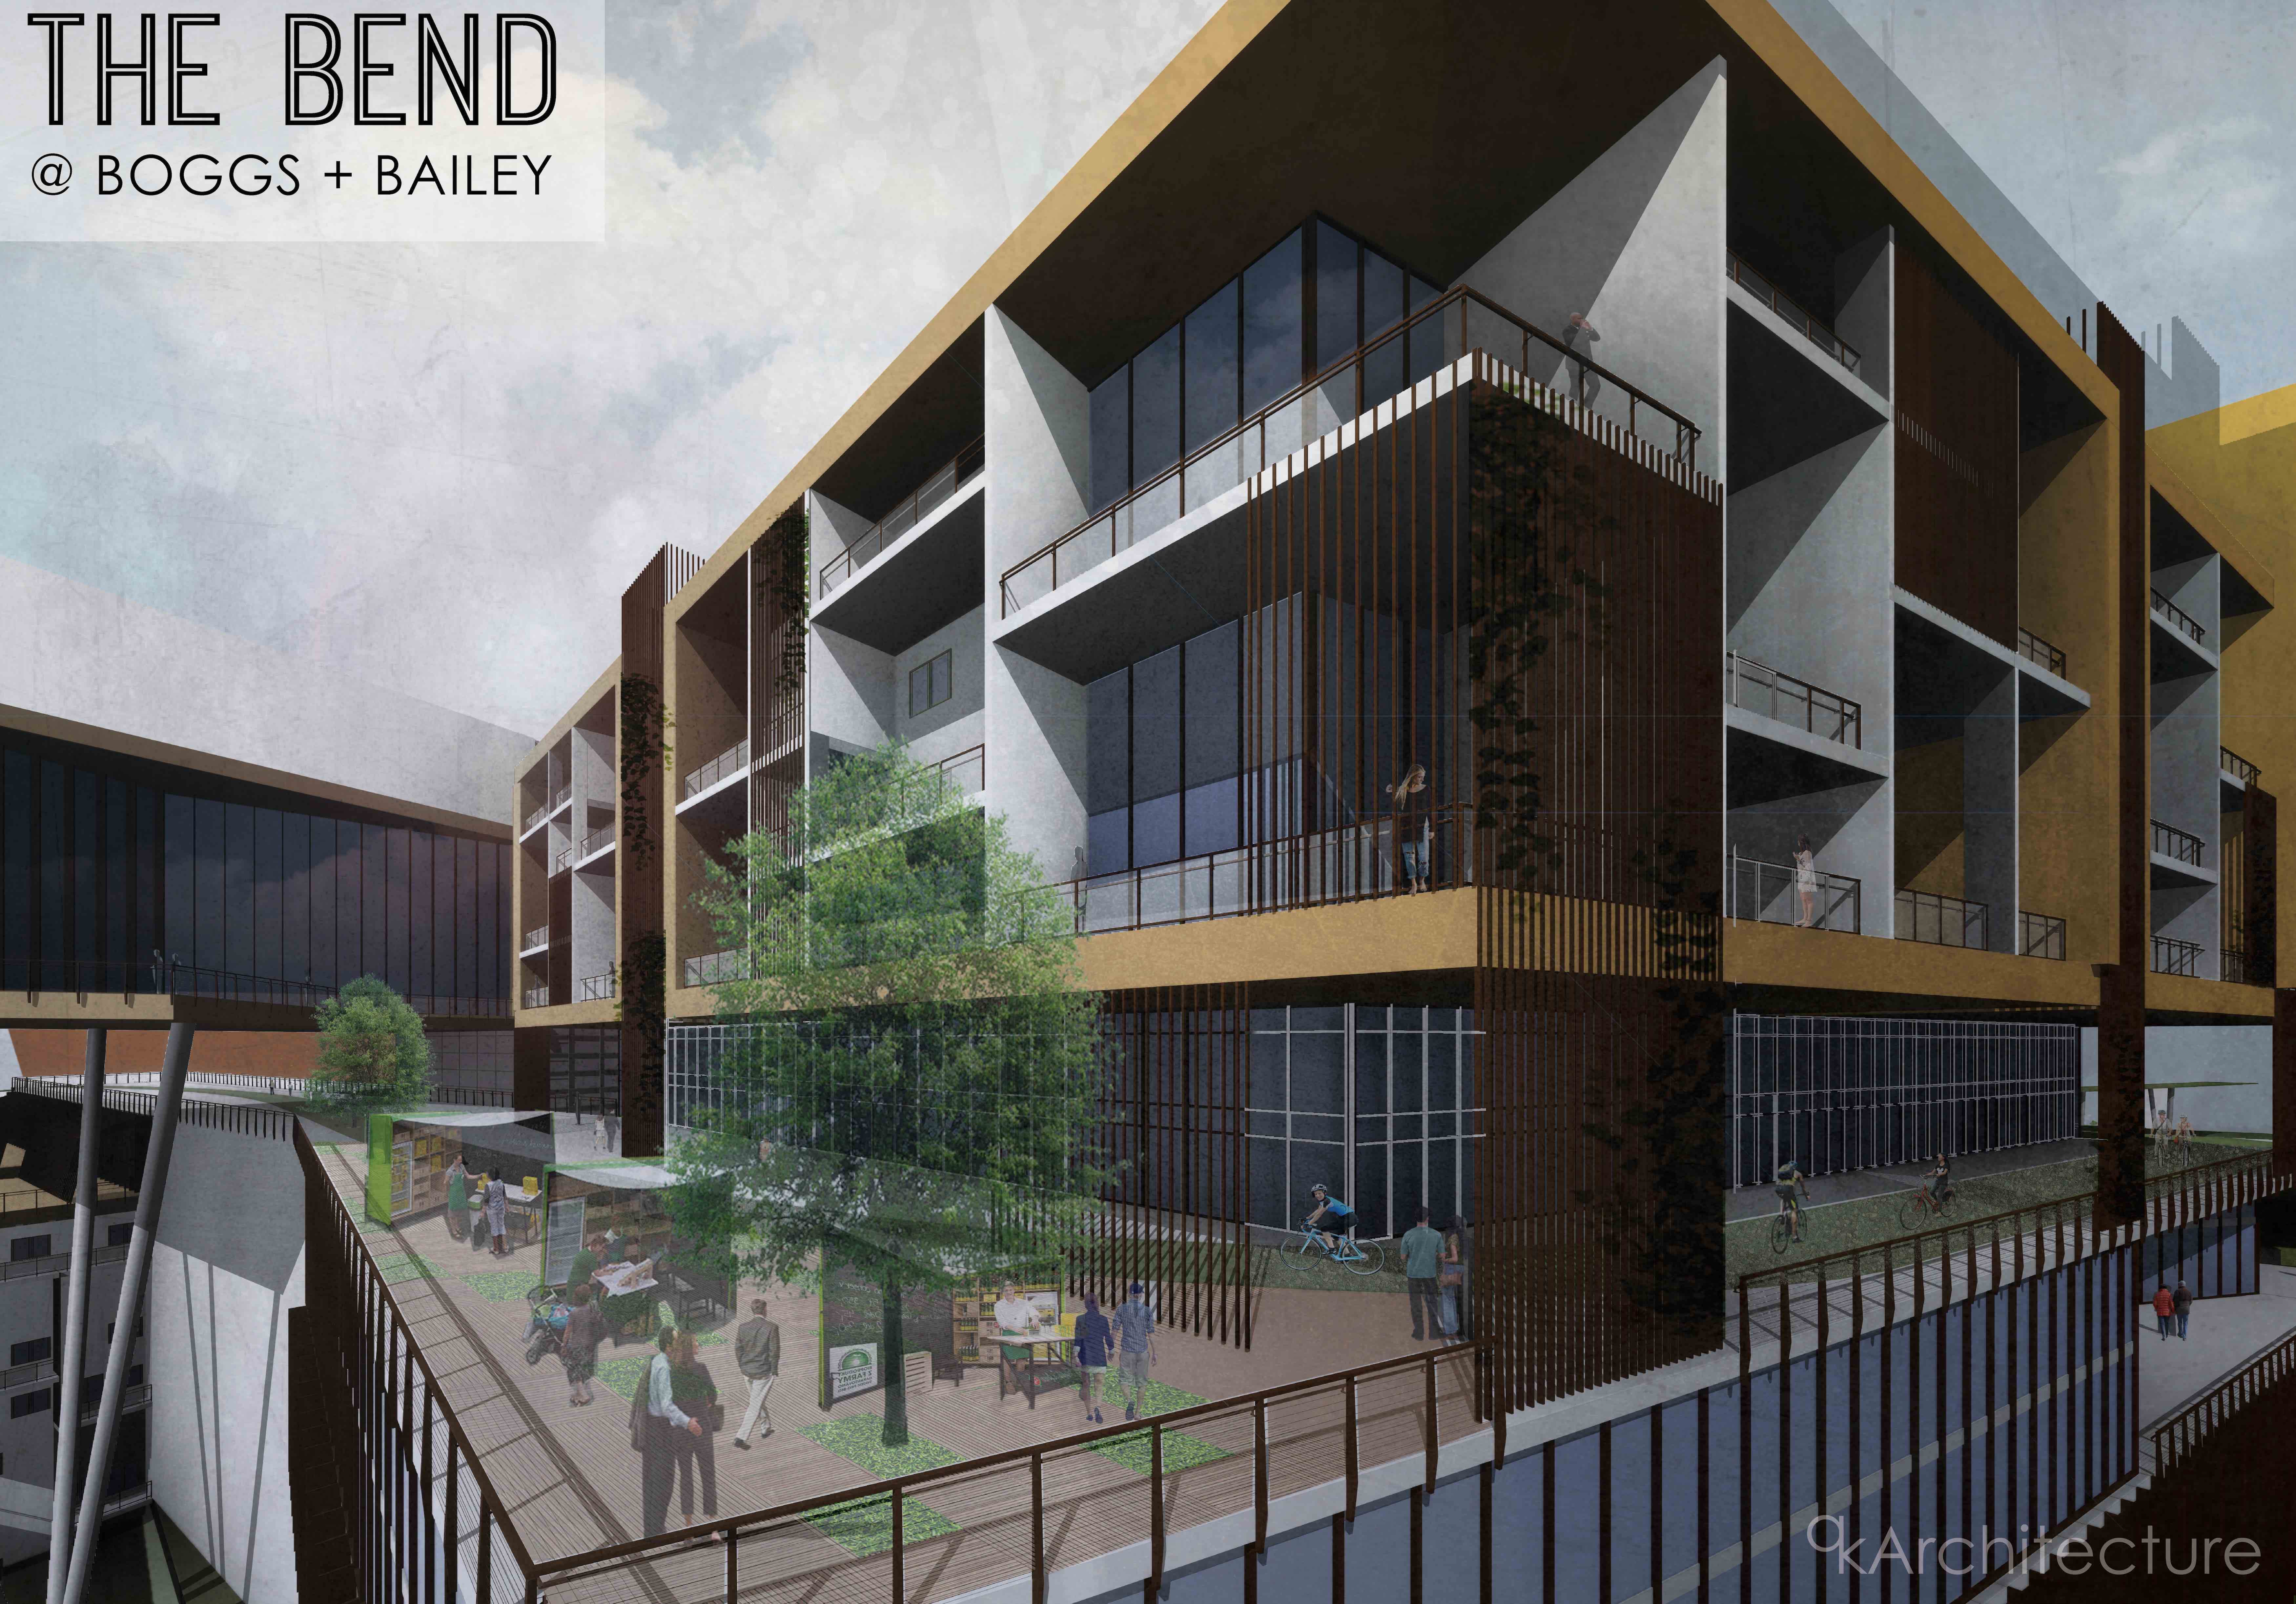 The Bend residential development